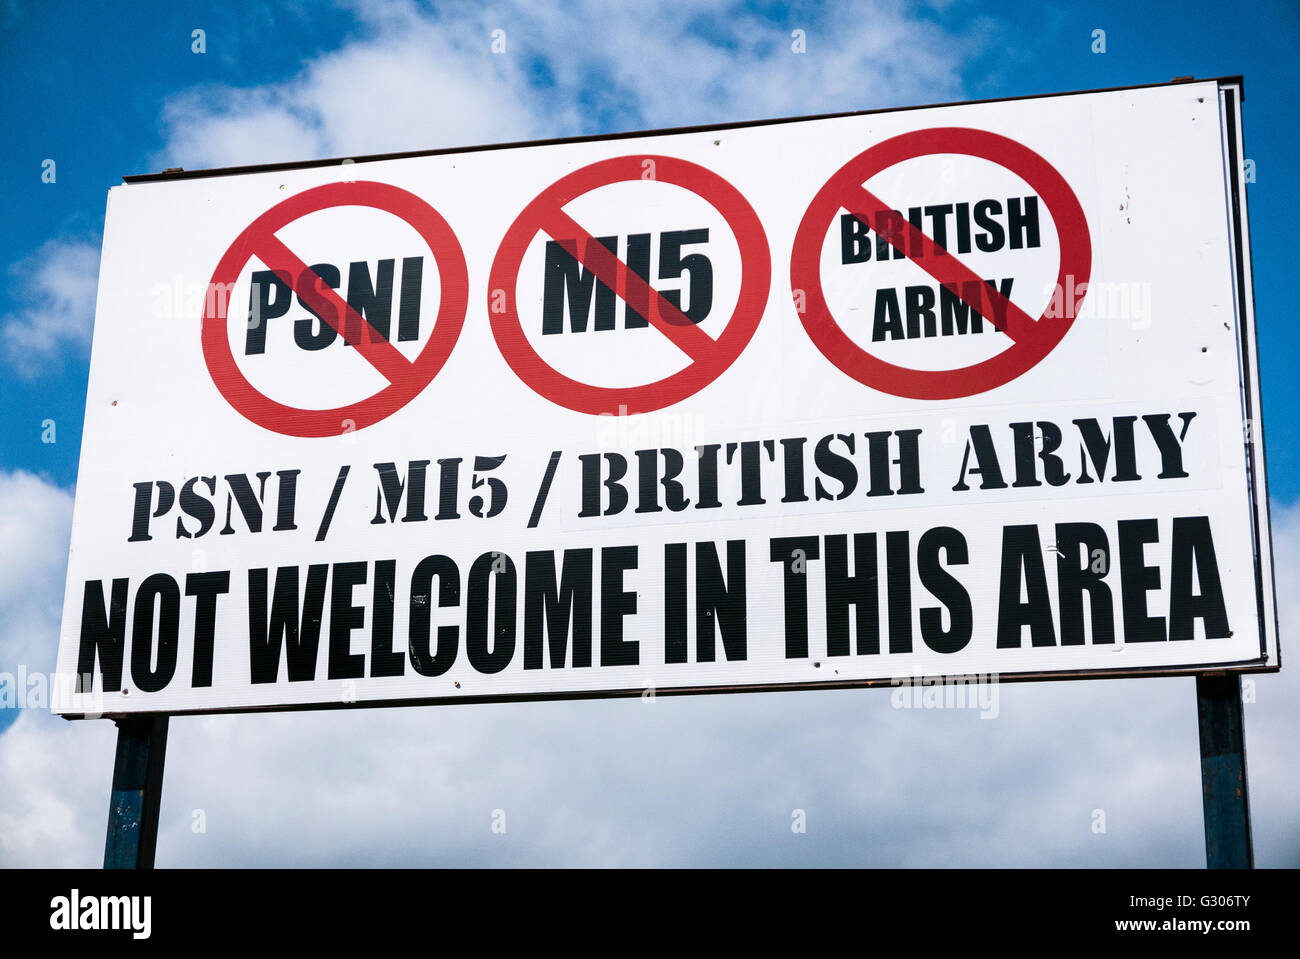 Sign in a republican area of Belfast, warning that the PSNI police, MI5 and the British Army are not welcome. - Stock Image